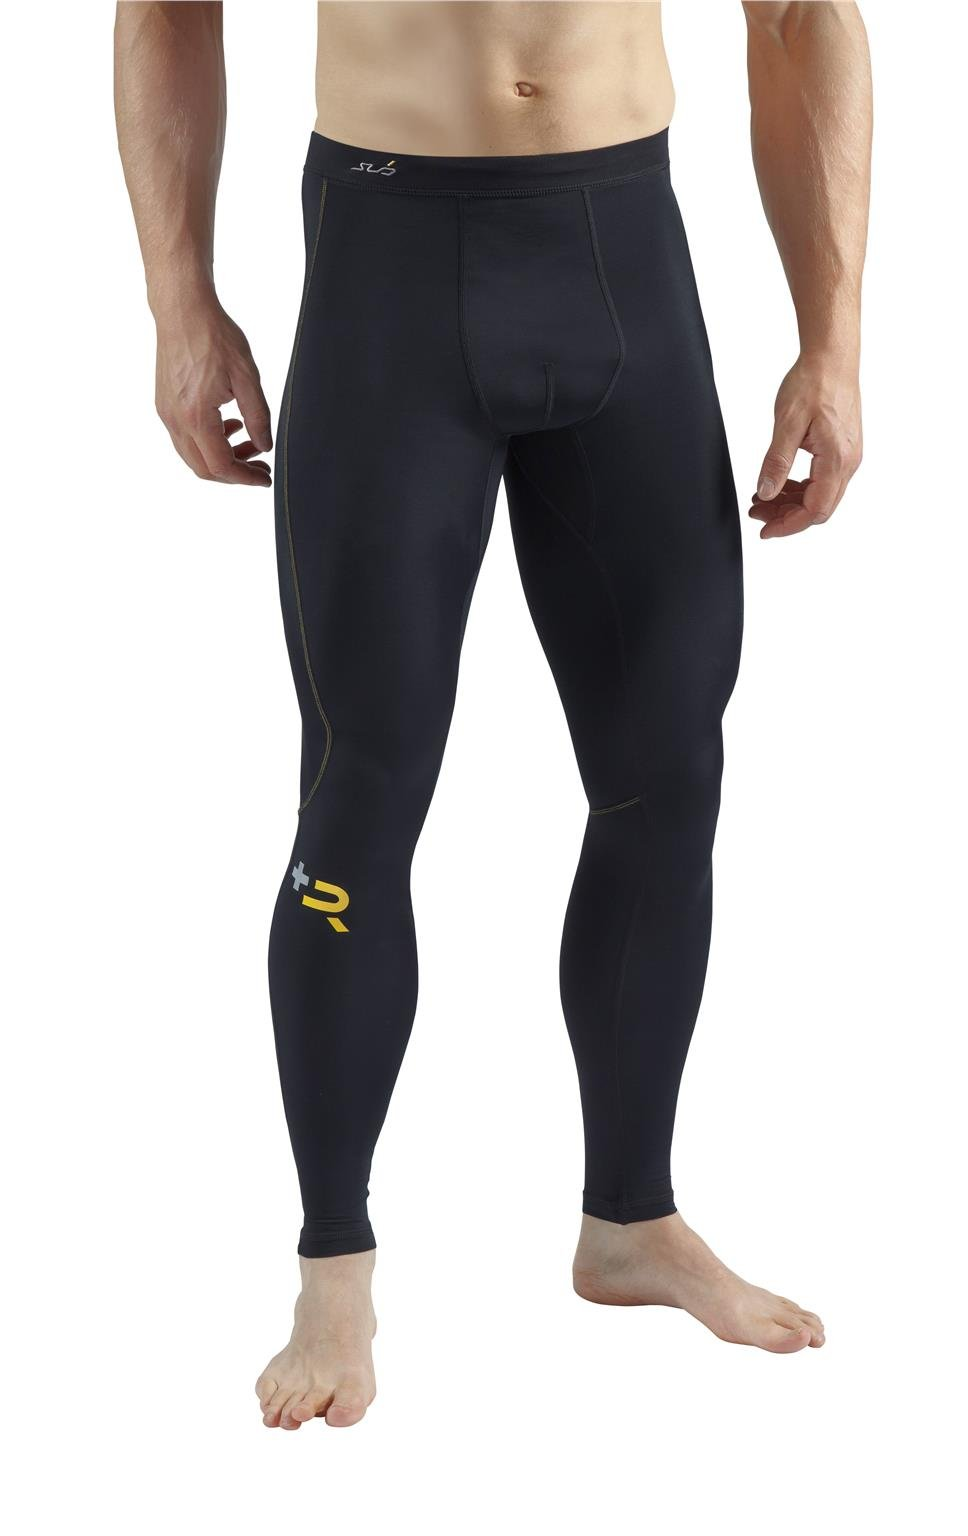 Sub Sports Leggings Recovery Compression